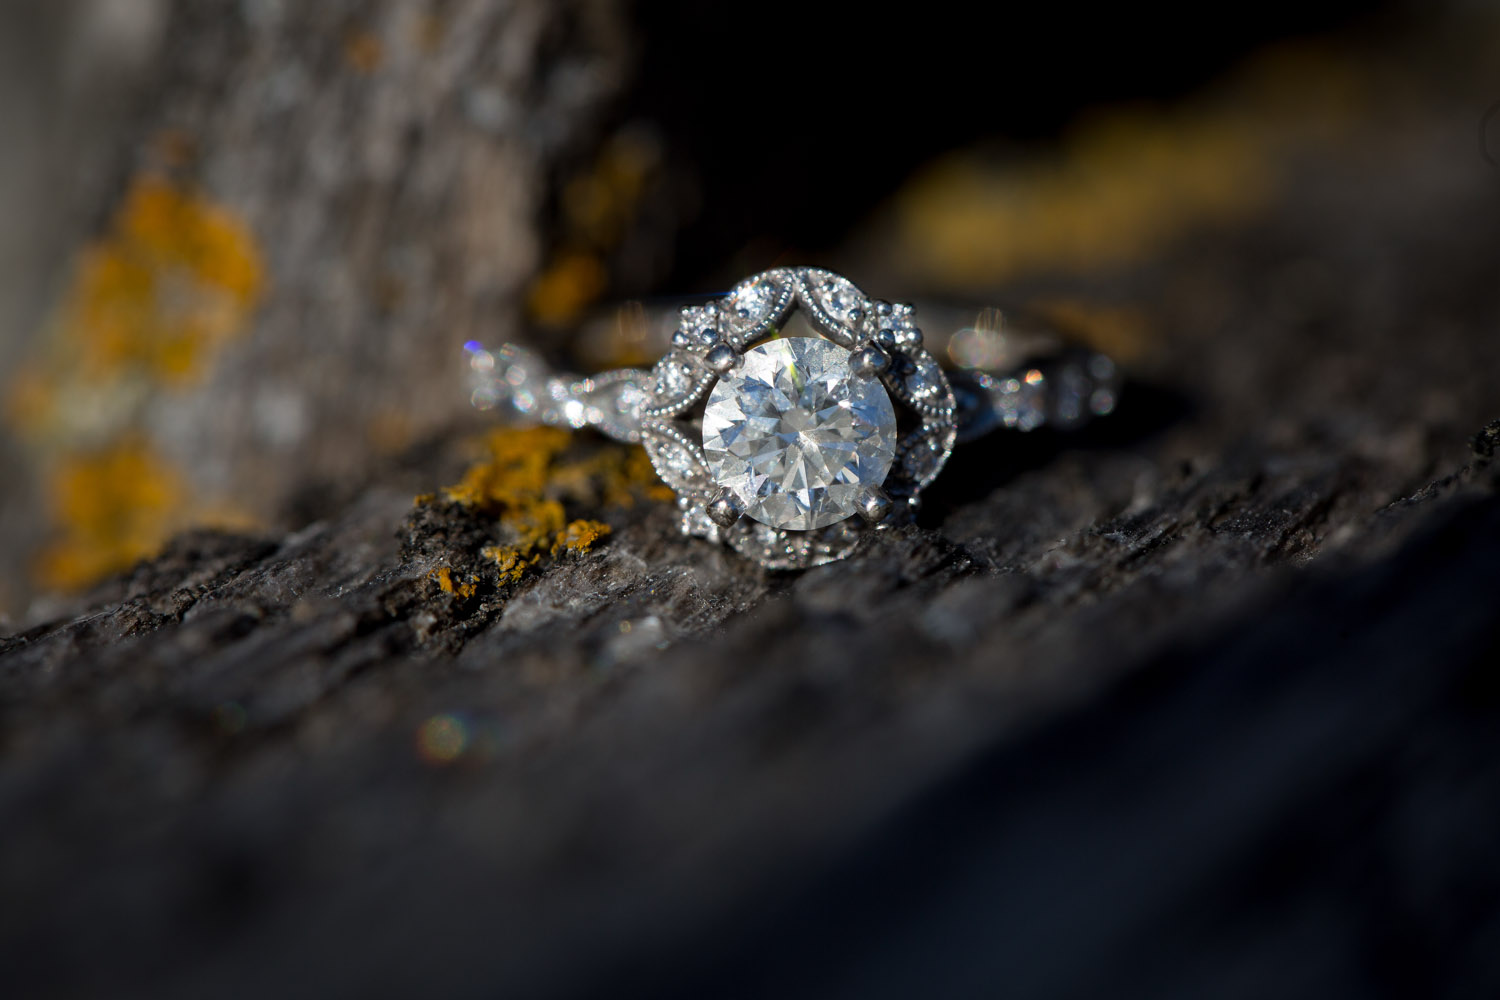 06-minnesota-winter-mn-engagement-ring-detail-photographer-theodore-wirth-park-mahonen-photography.jpg